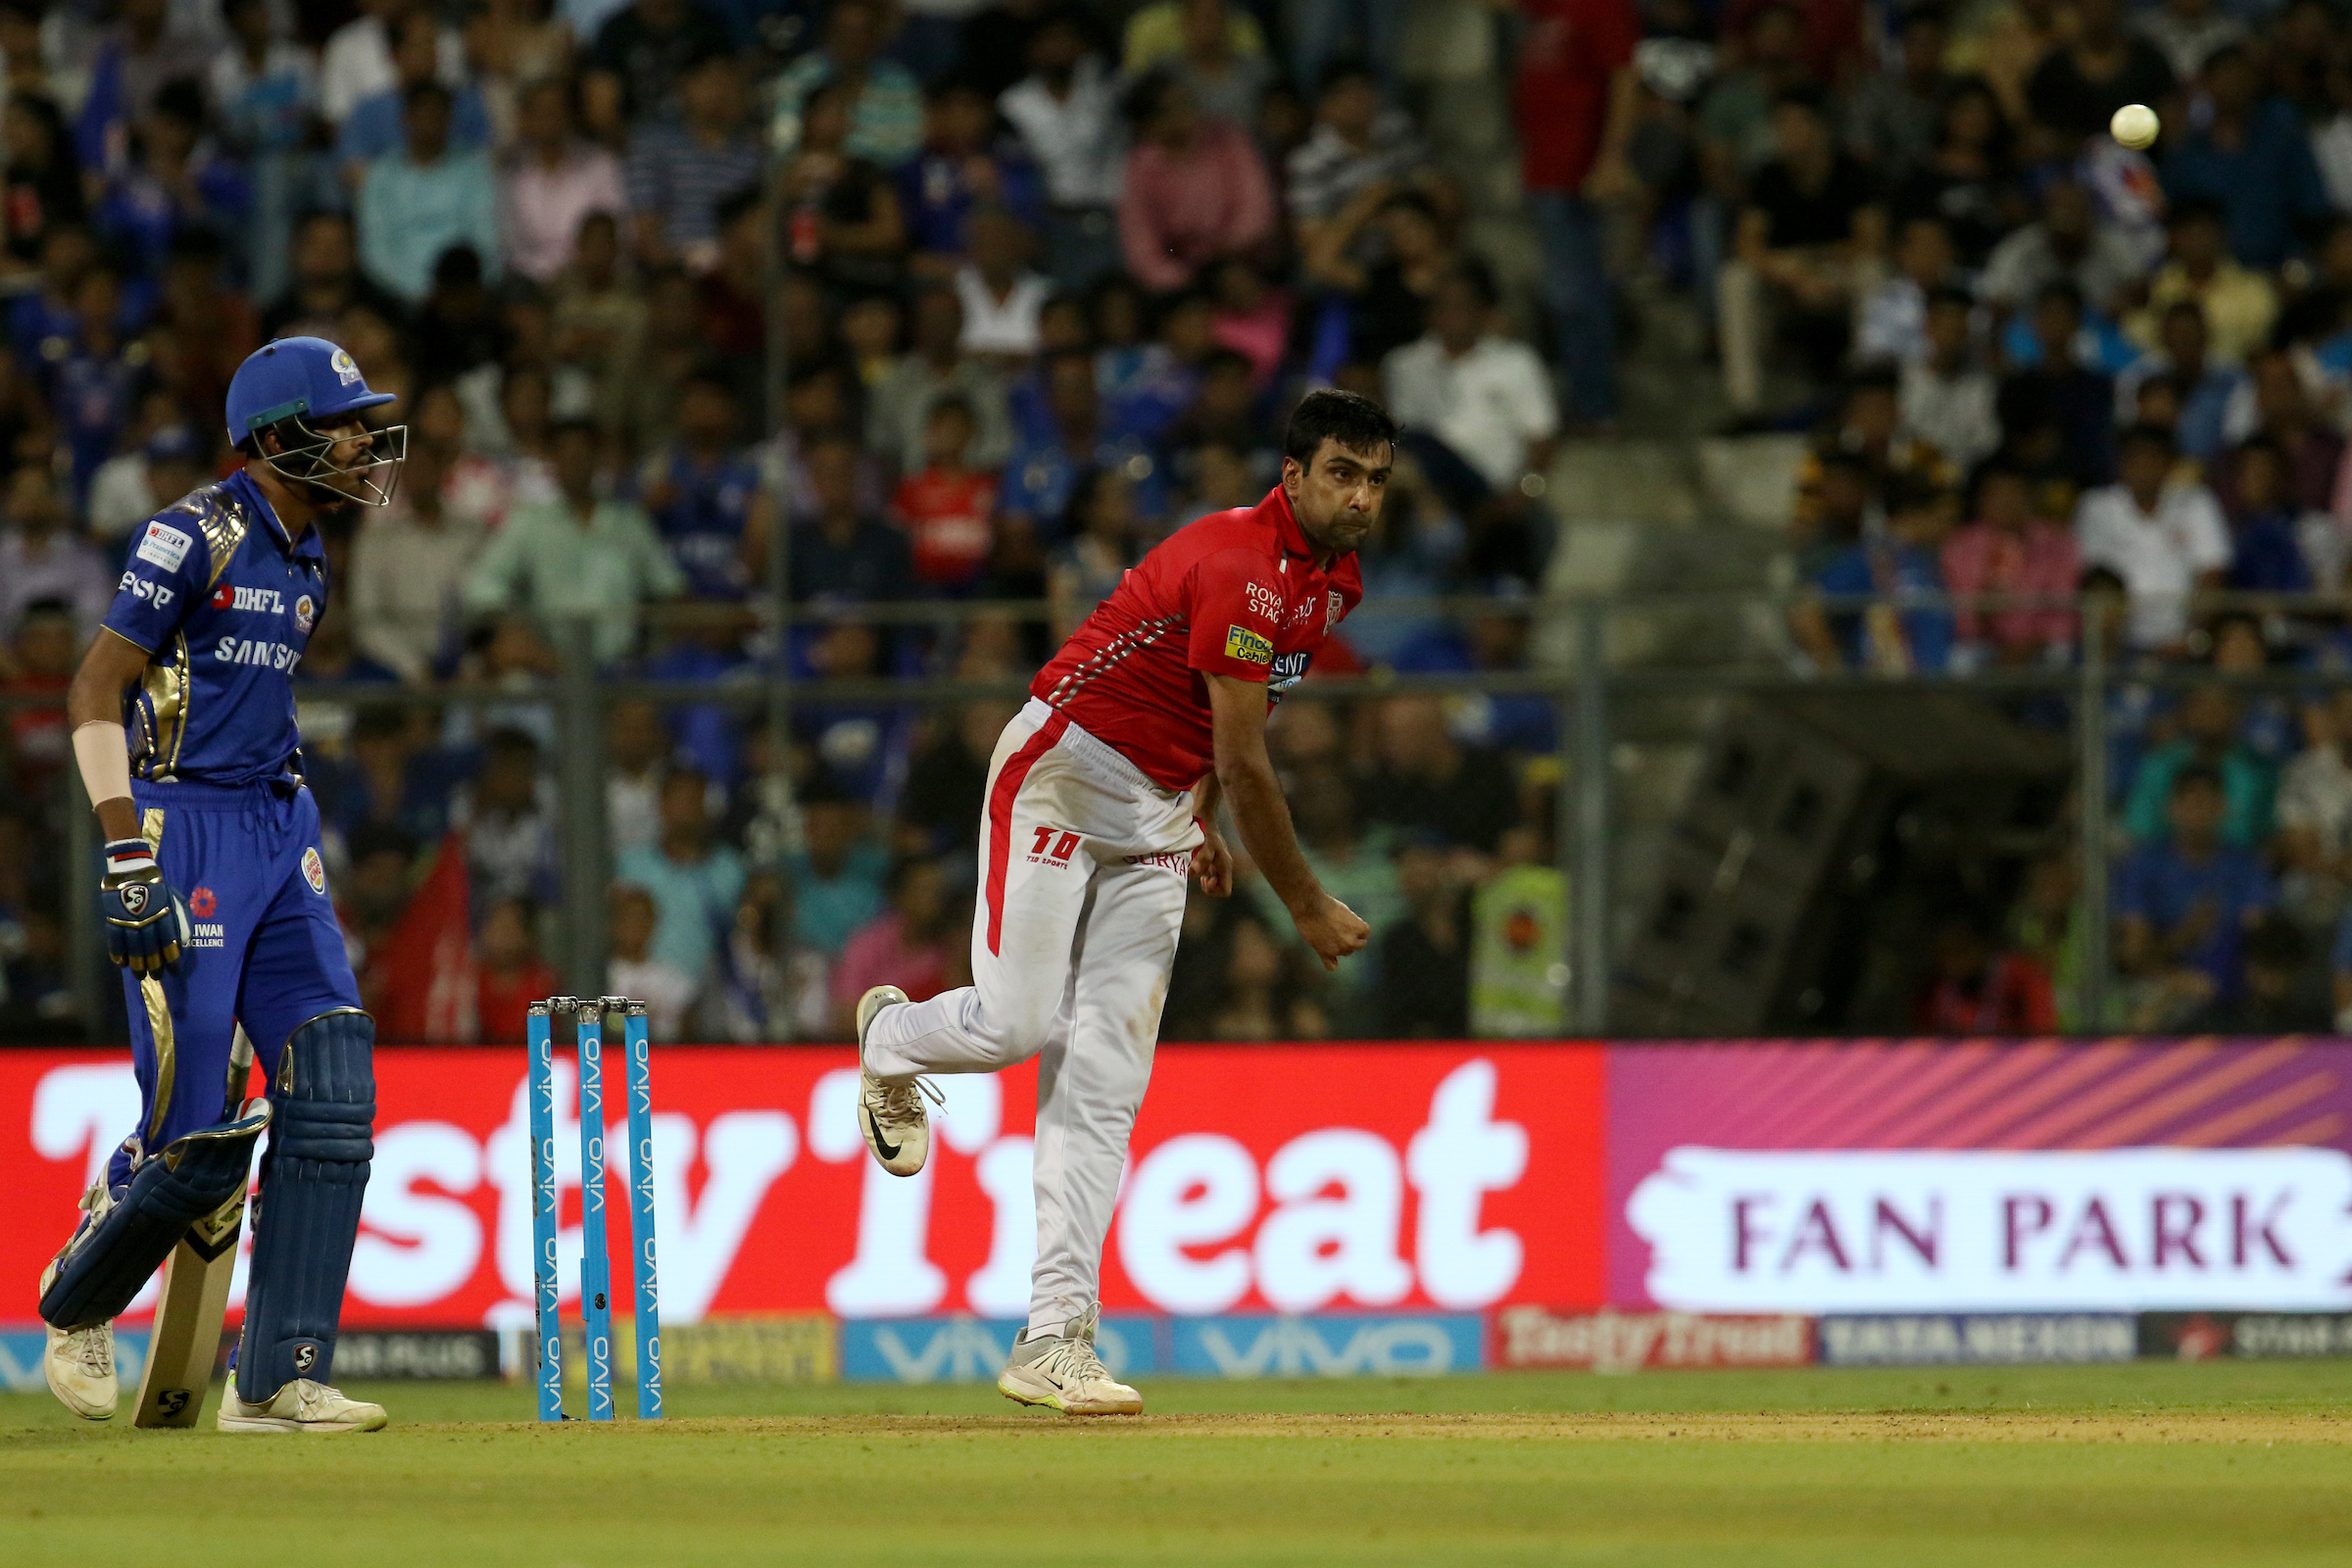 R Ashwin has eight wickets in 13 matches this season (Image: Sportzpics)